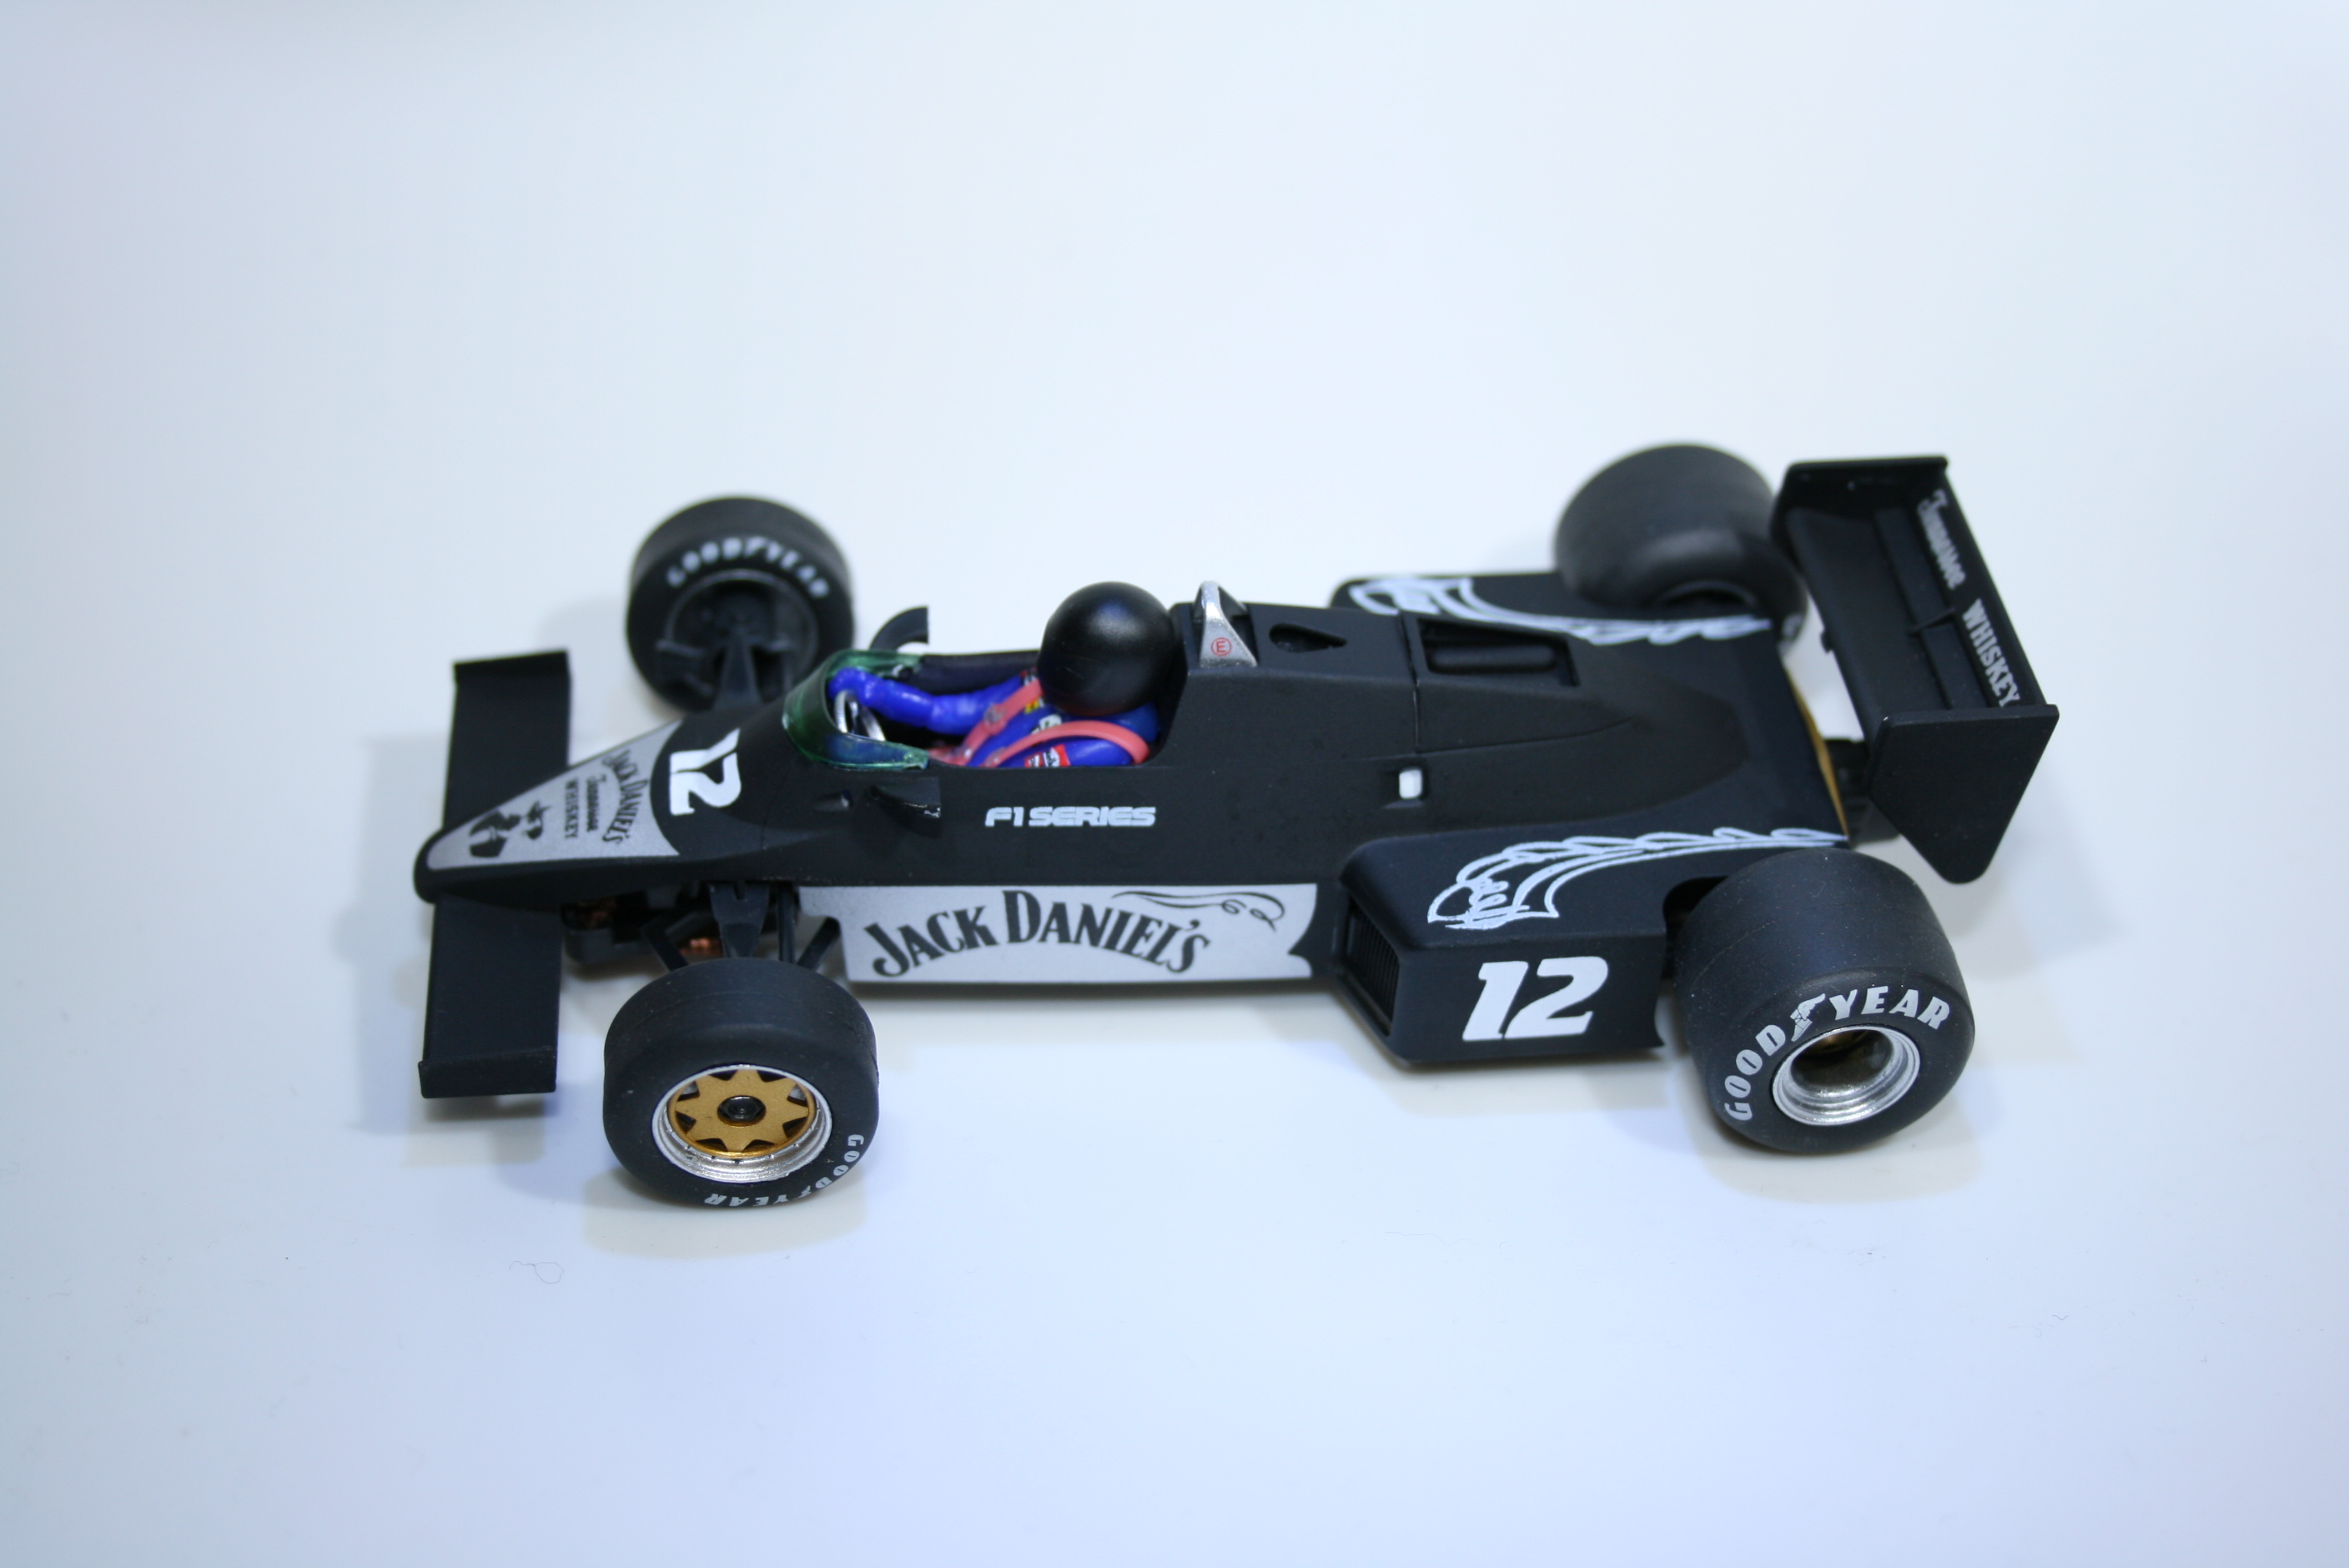 946 Williams FW08C 1983 FLY 40304 Jack Daniels Edition 2017 Boxed